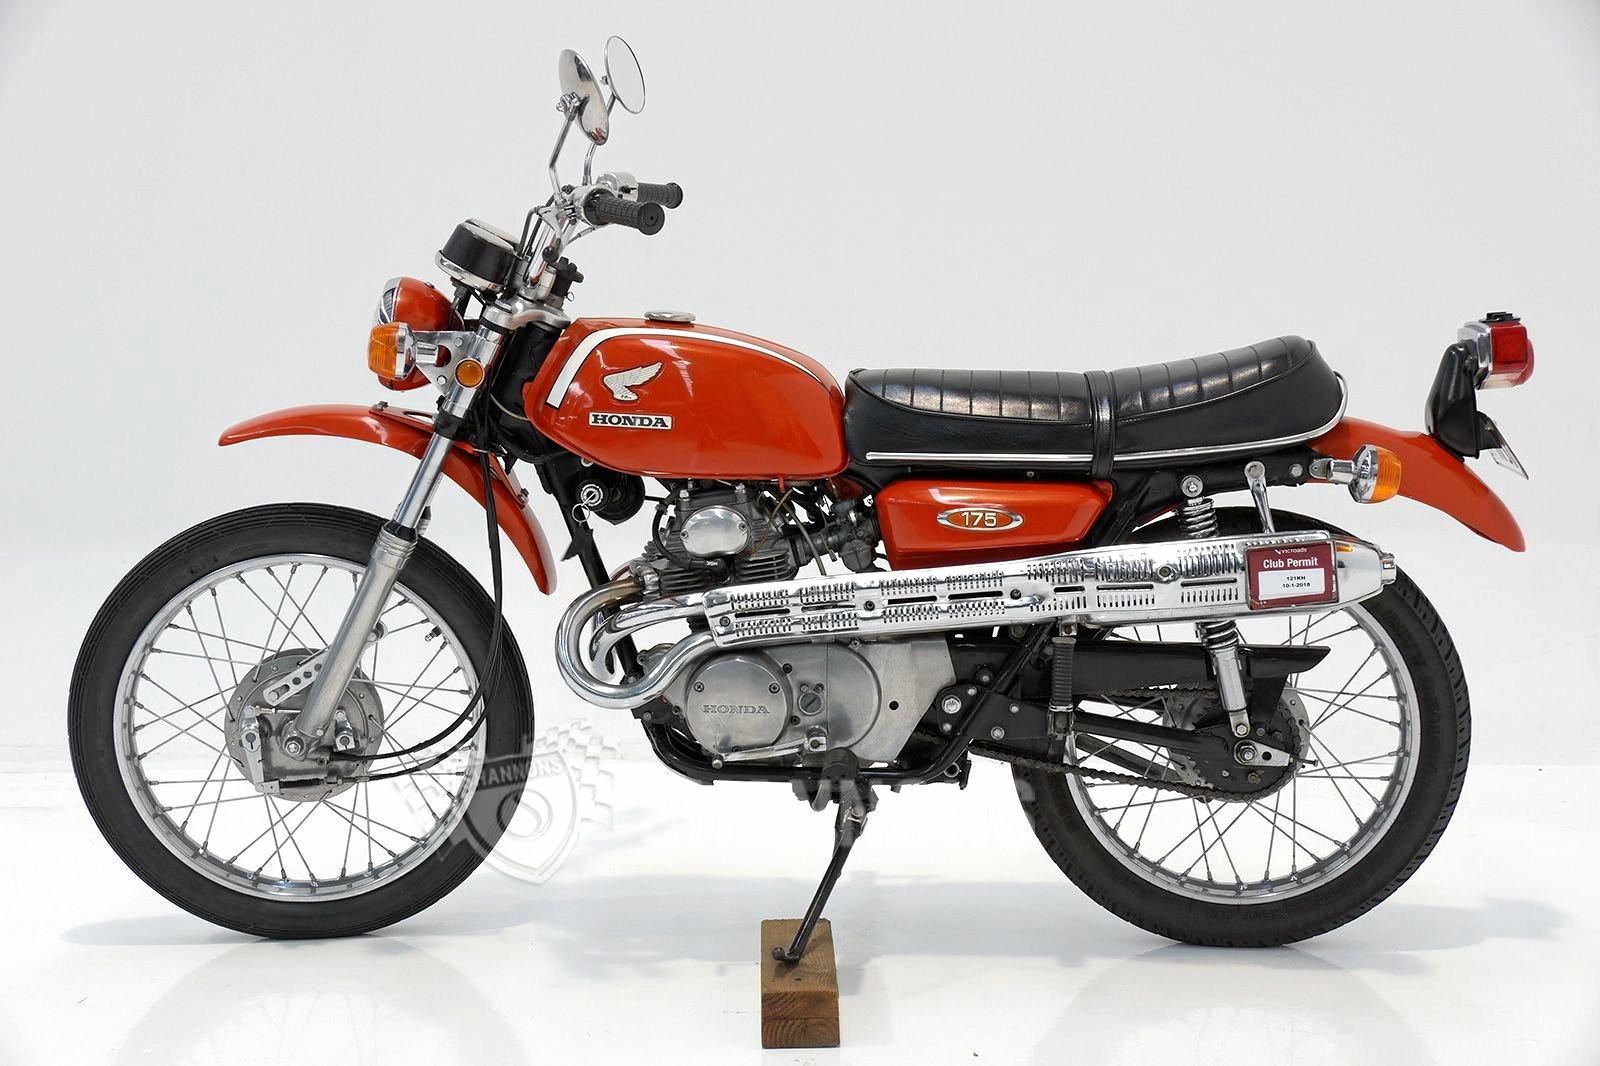 This 1969 Honda CL175 sold for $4500.